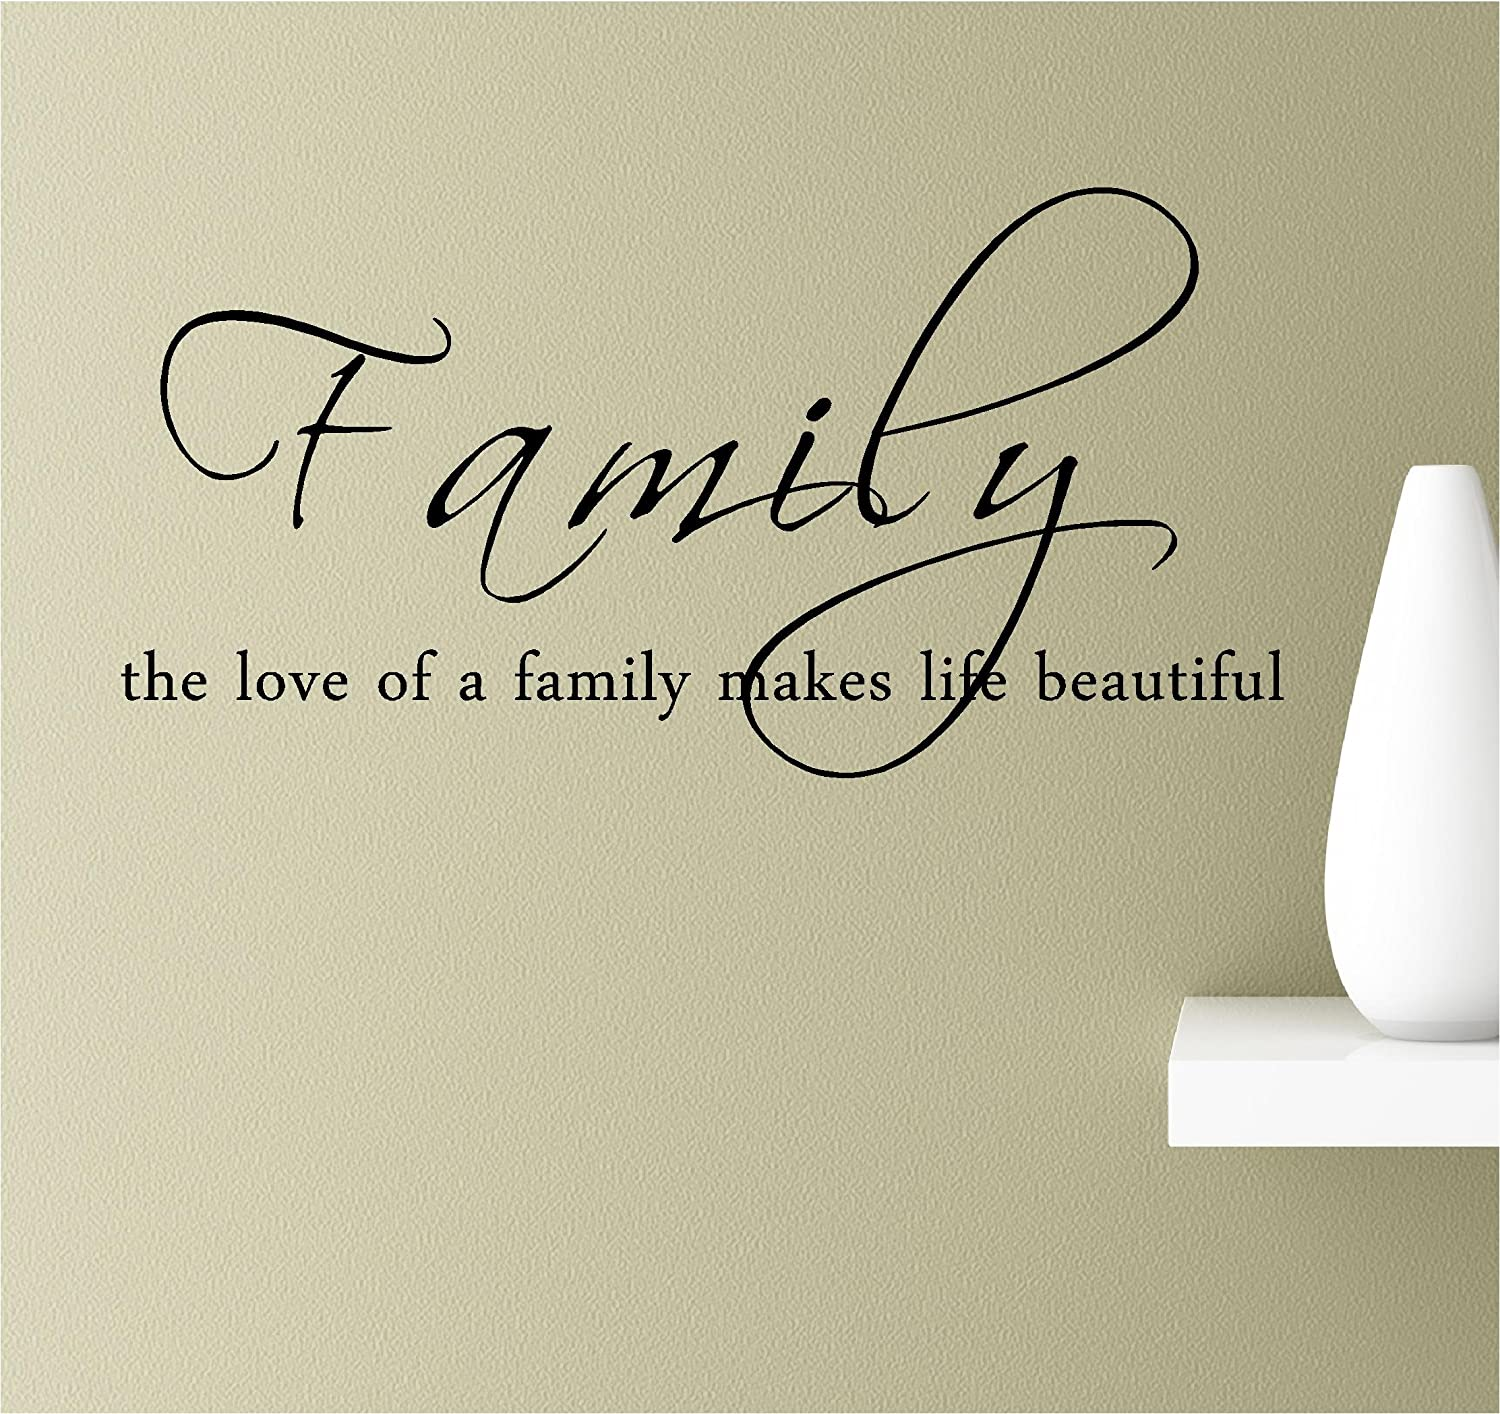 Southern Sticker Company Family The Love of a Family Inspirational Wall Quotes Sayings Vinyl Decals Art (Black)